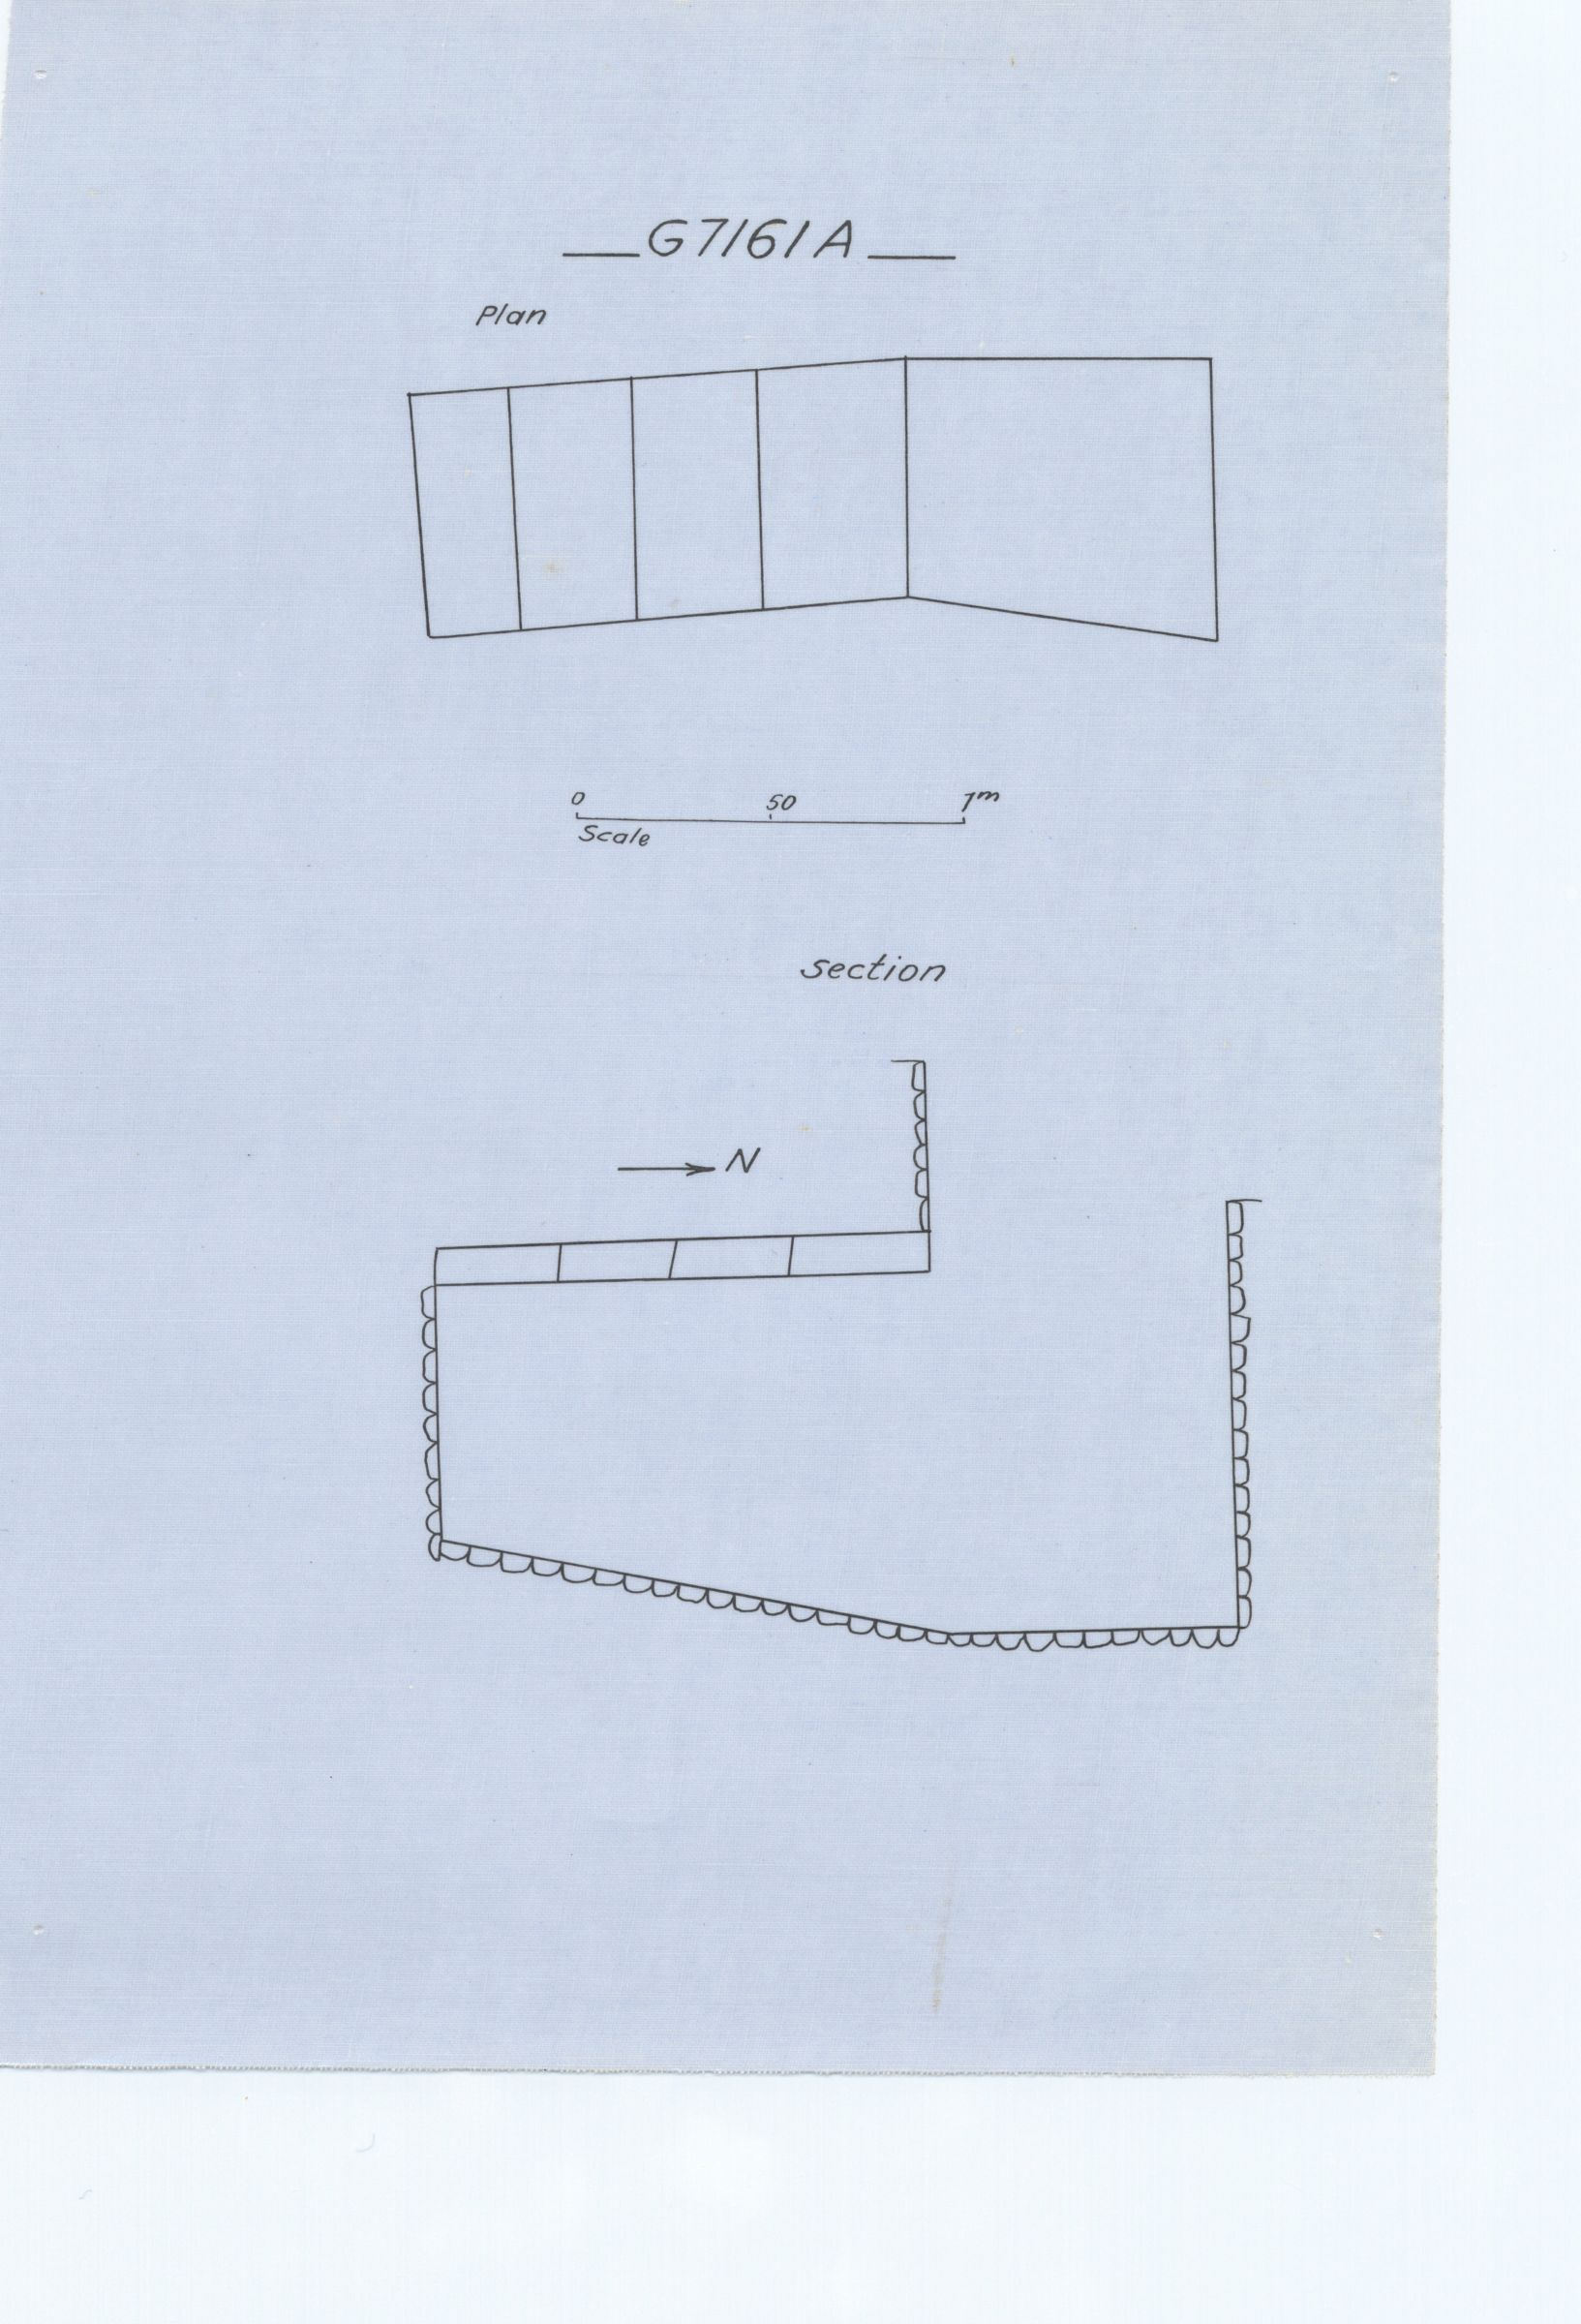 Maps and plans: G 7161, Shaft A